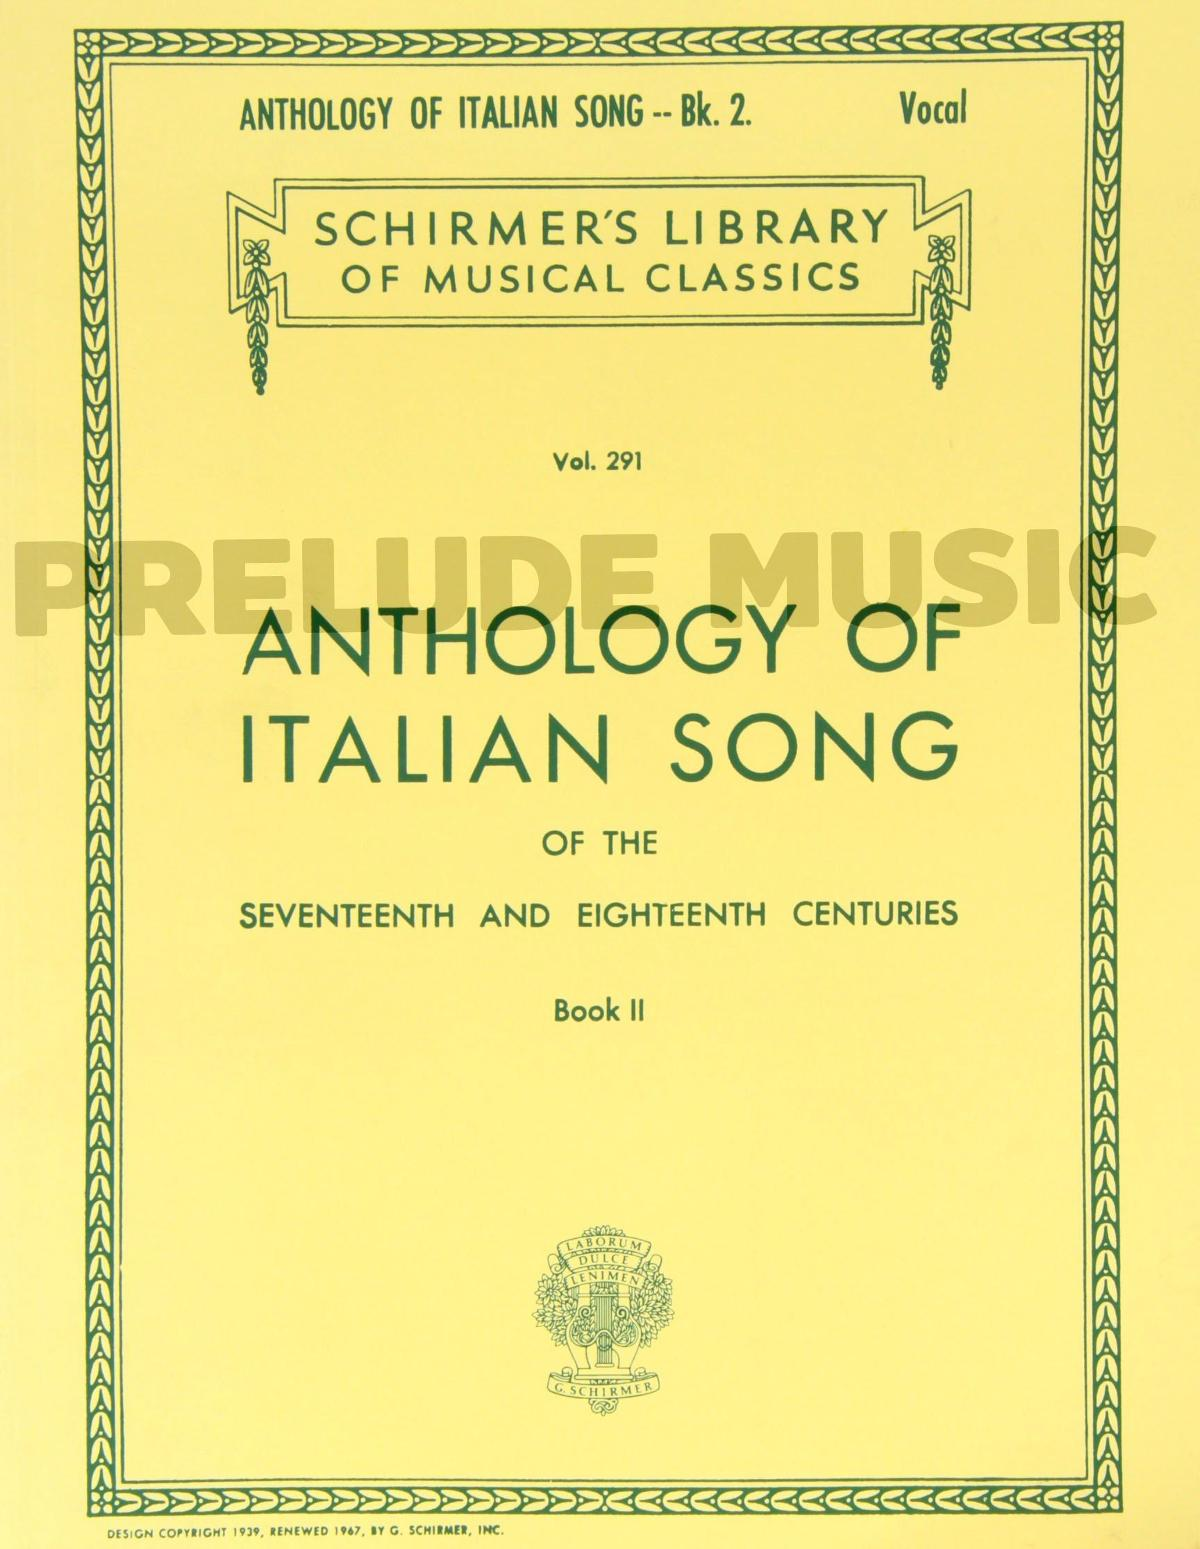 Anthology of Italian Song of the 17th and 18th Centuries